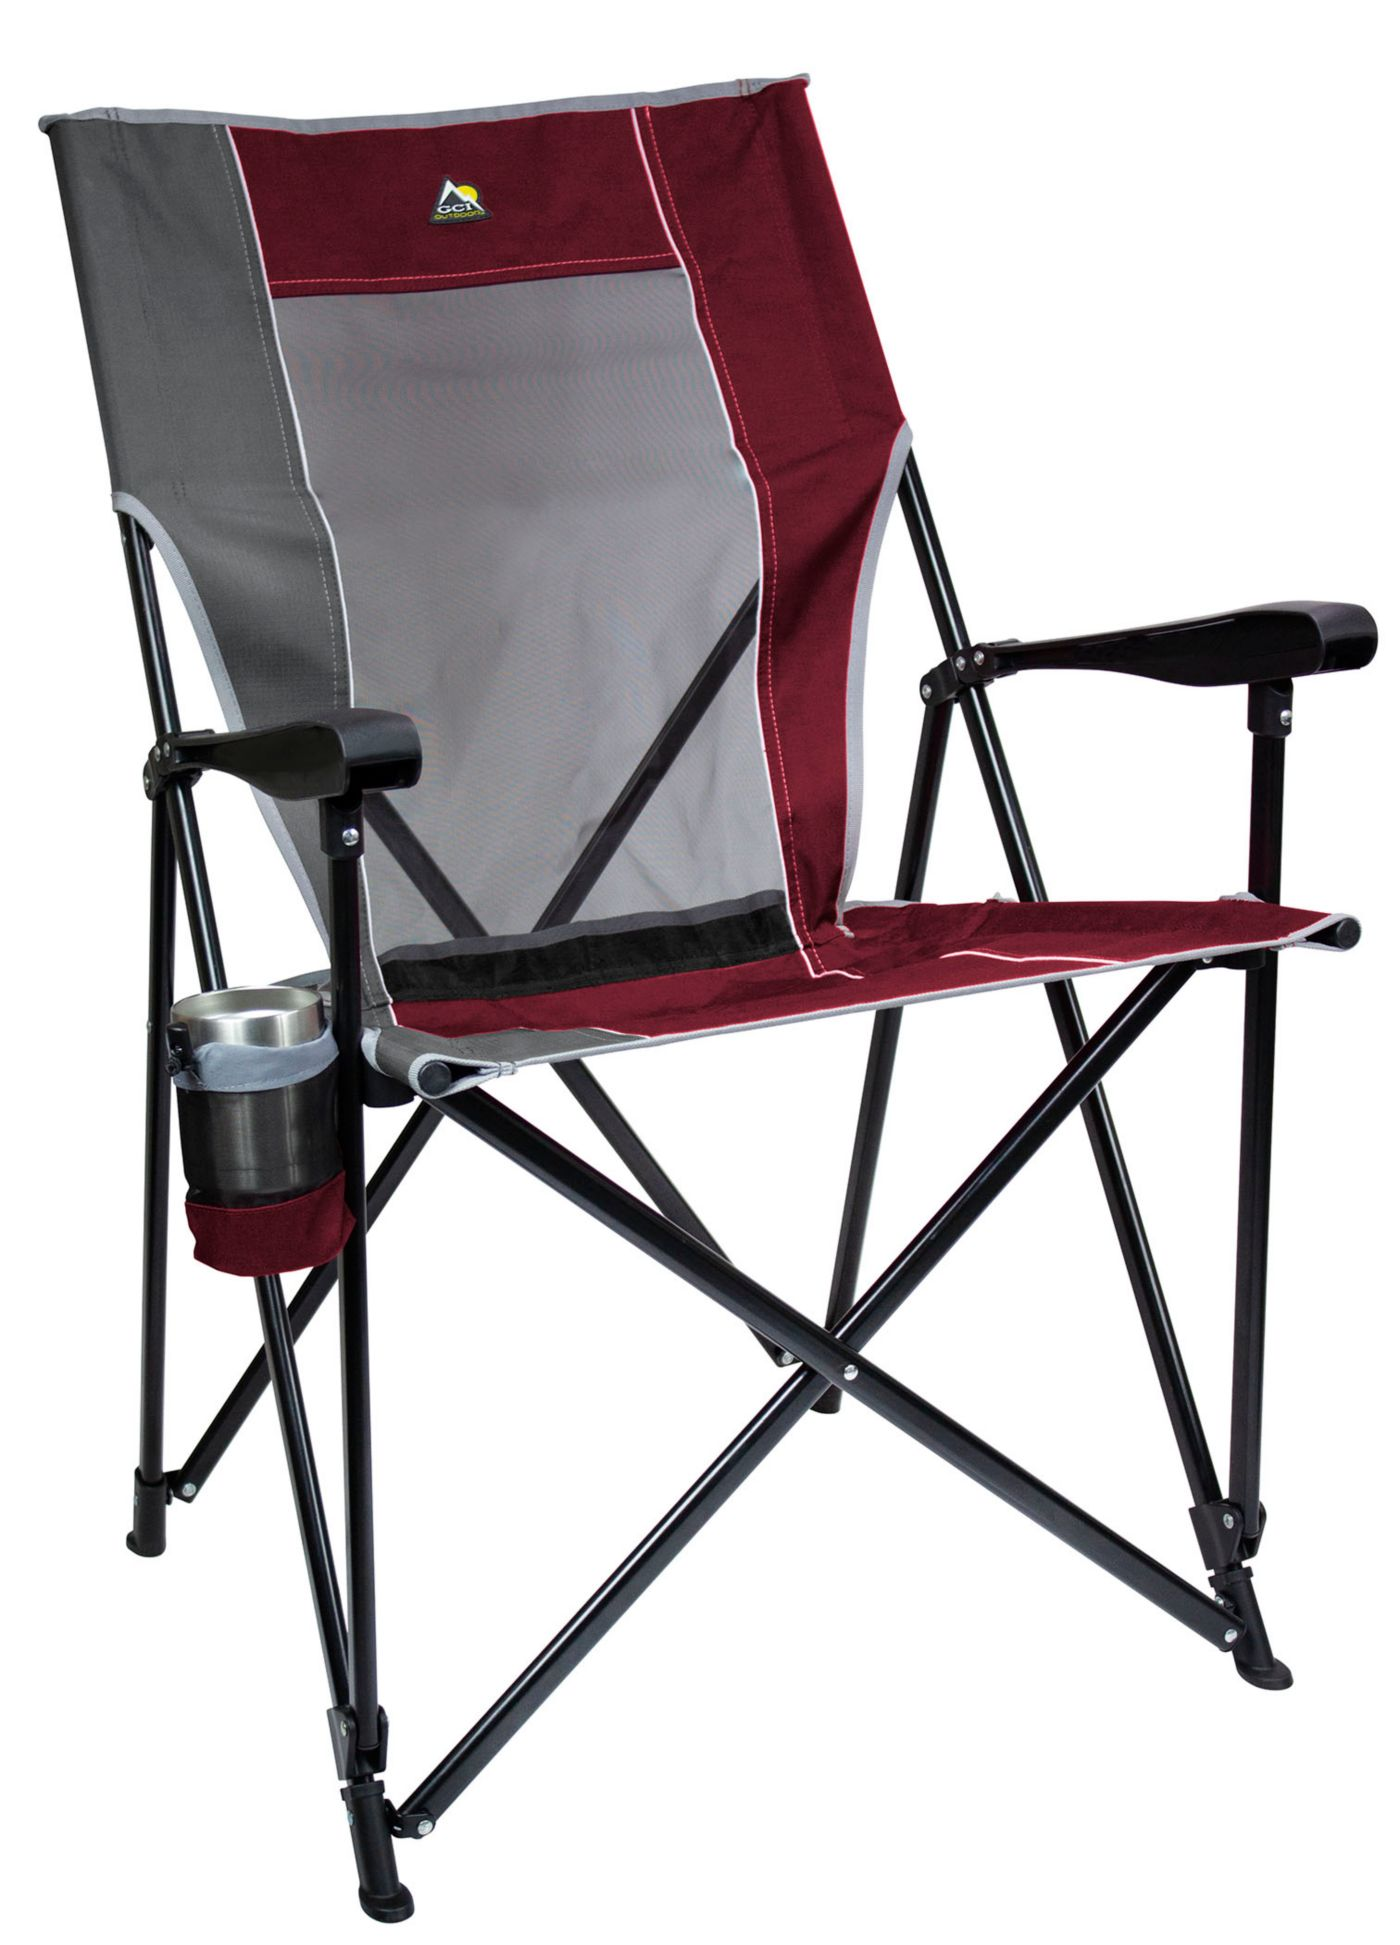 GCI Outdoor Eazy Chair XL